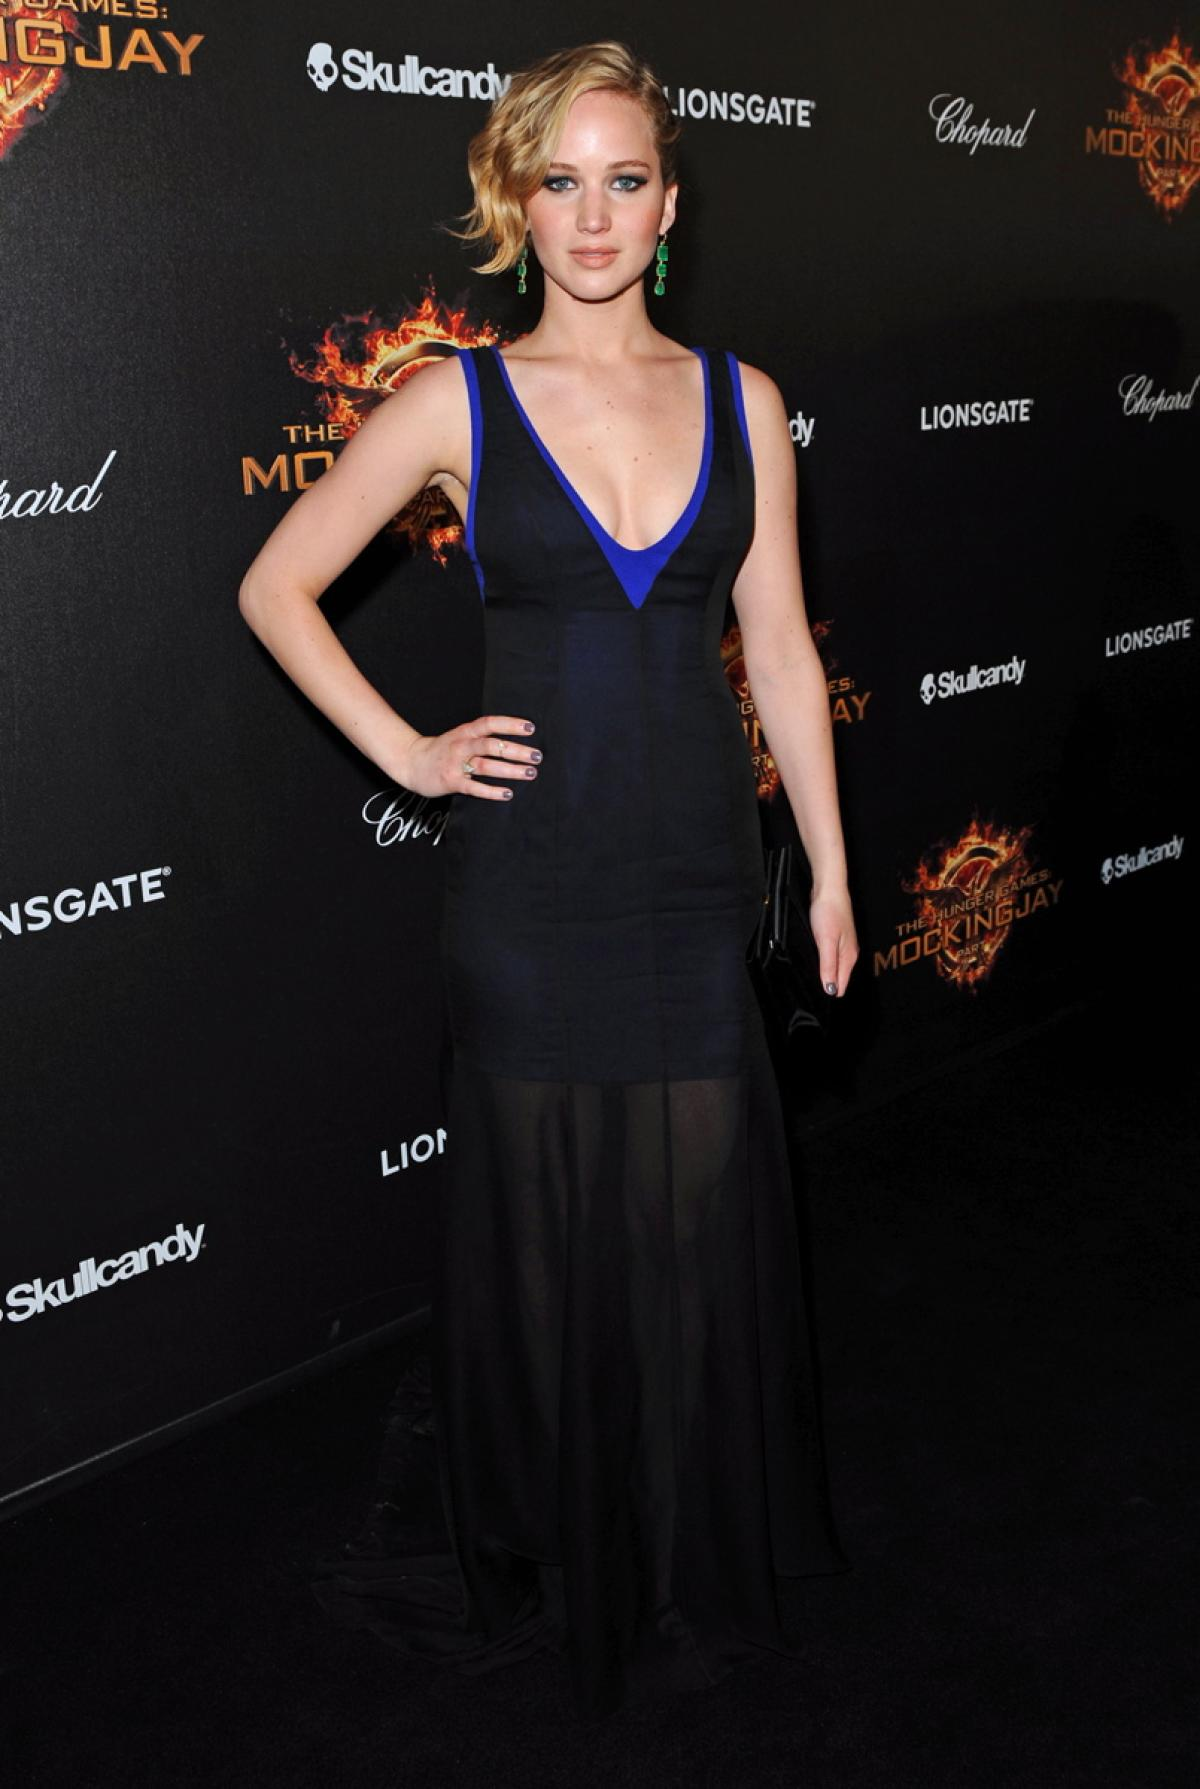 In a V neckine black dress with blue details at The Hunger Games Mockingjay part 1 Premiere In Cannes France May 17, 2014